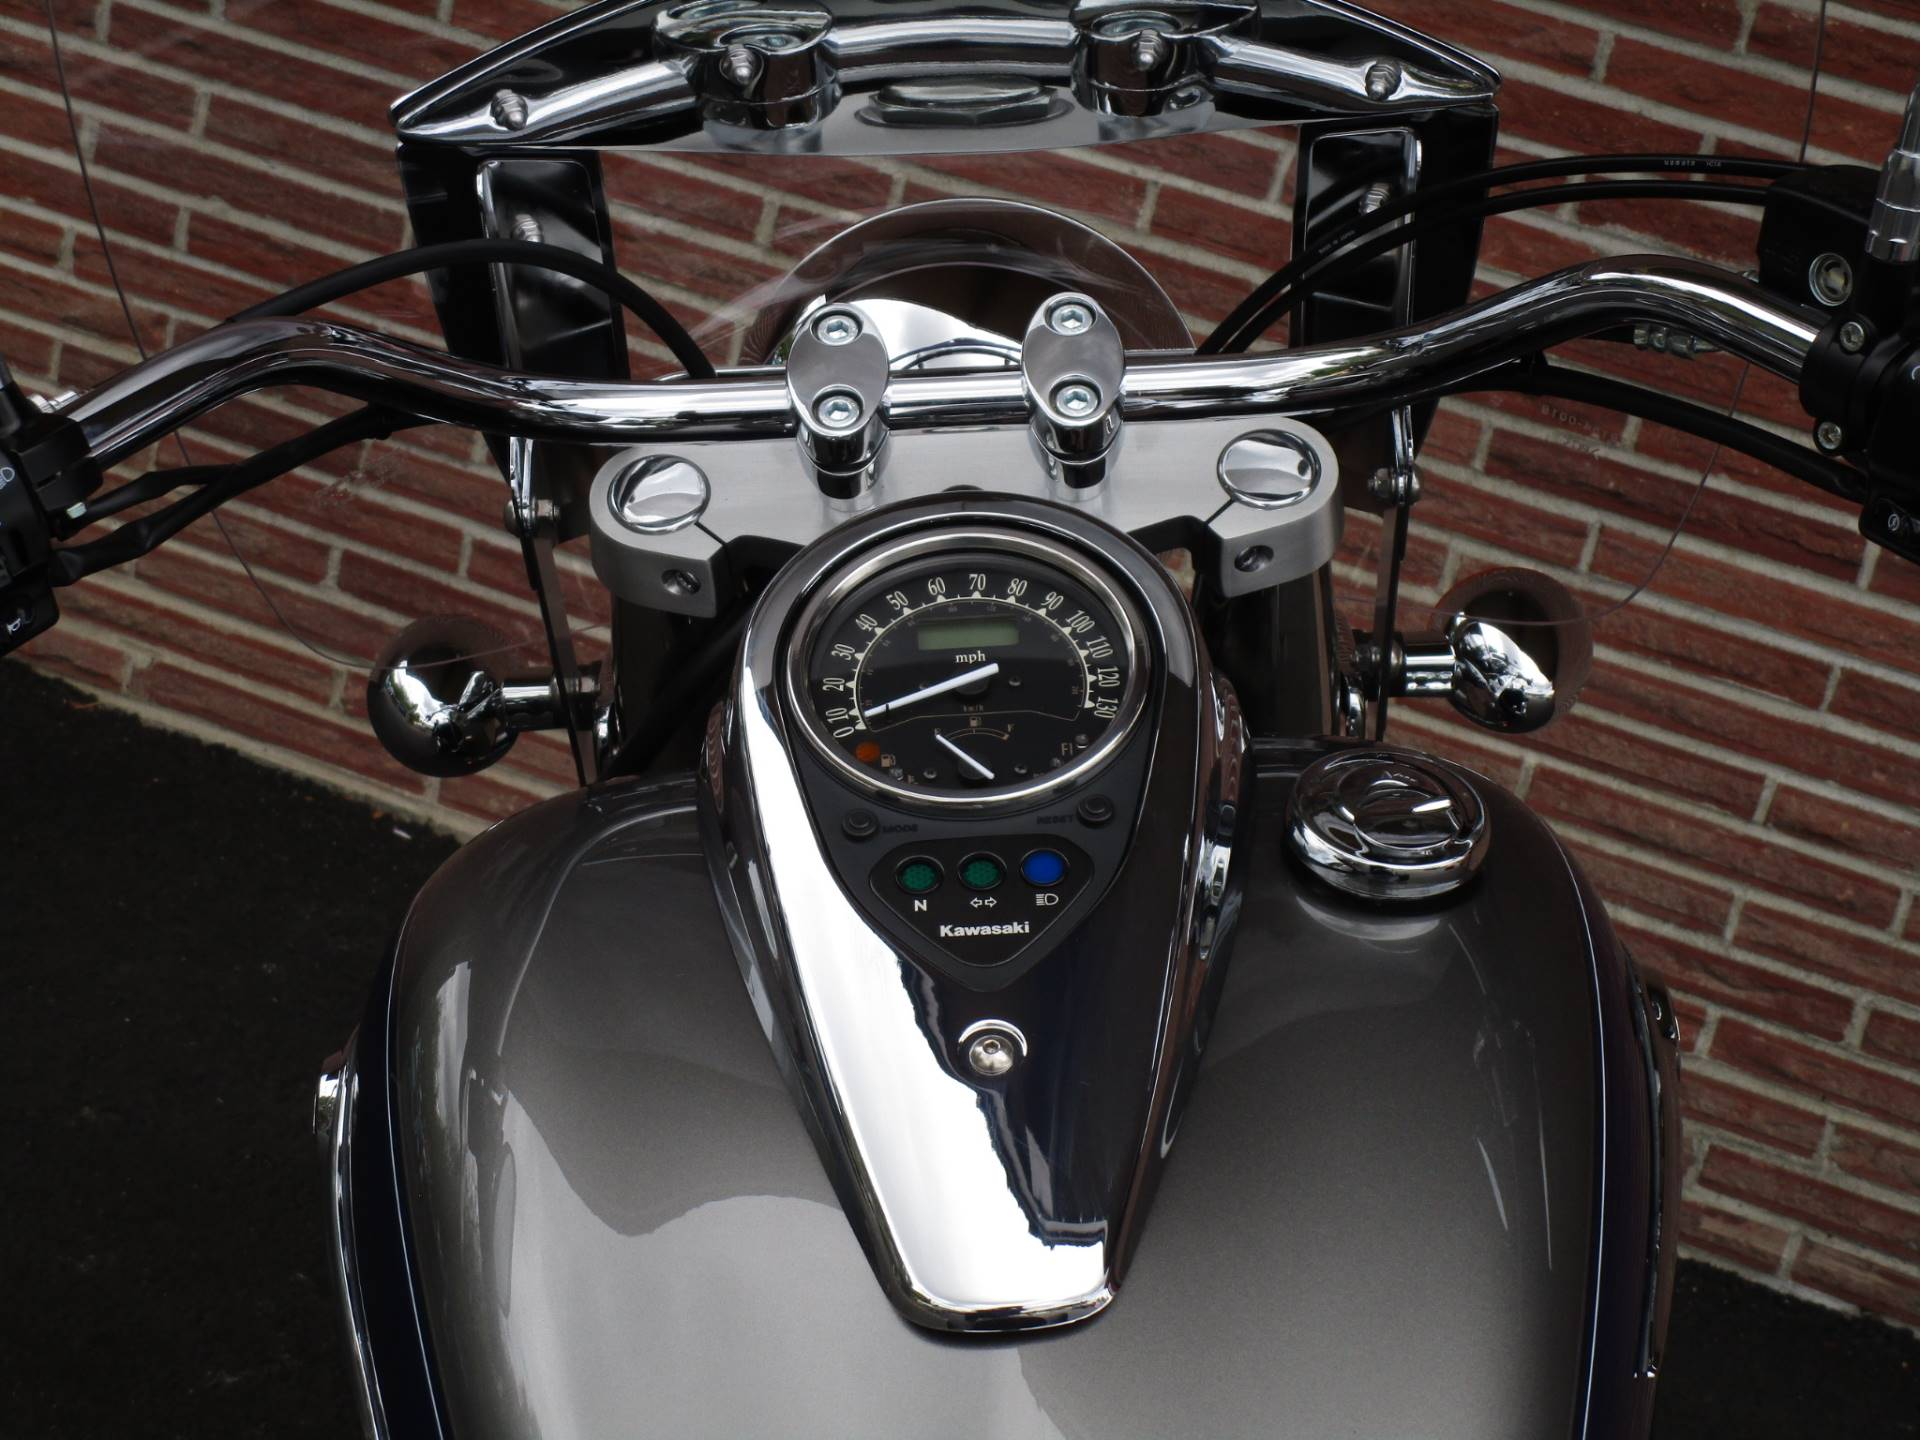 2019 Kawasaki Vulcan 900 Classic LT in Bellevue, Washington - Photo 6